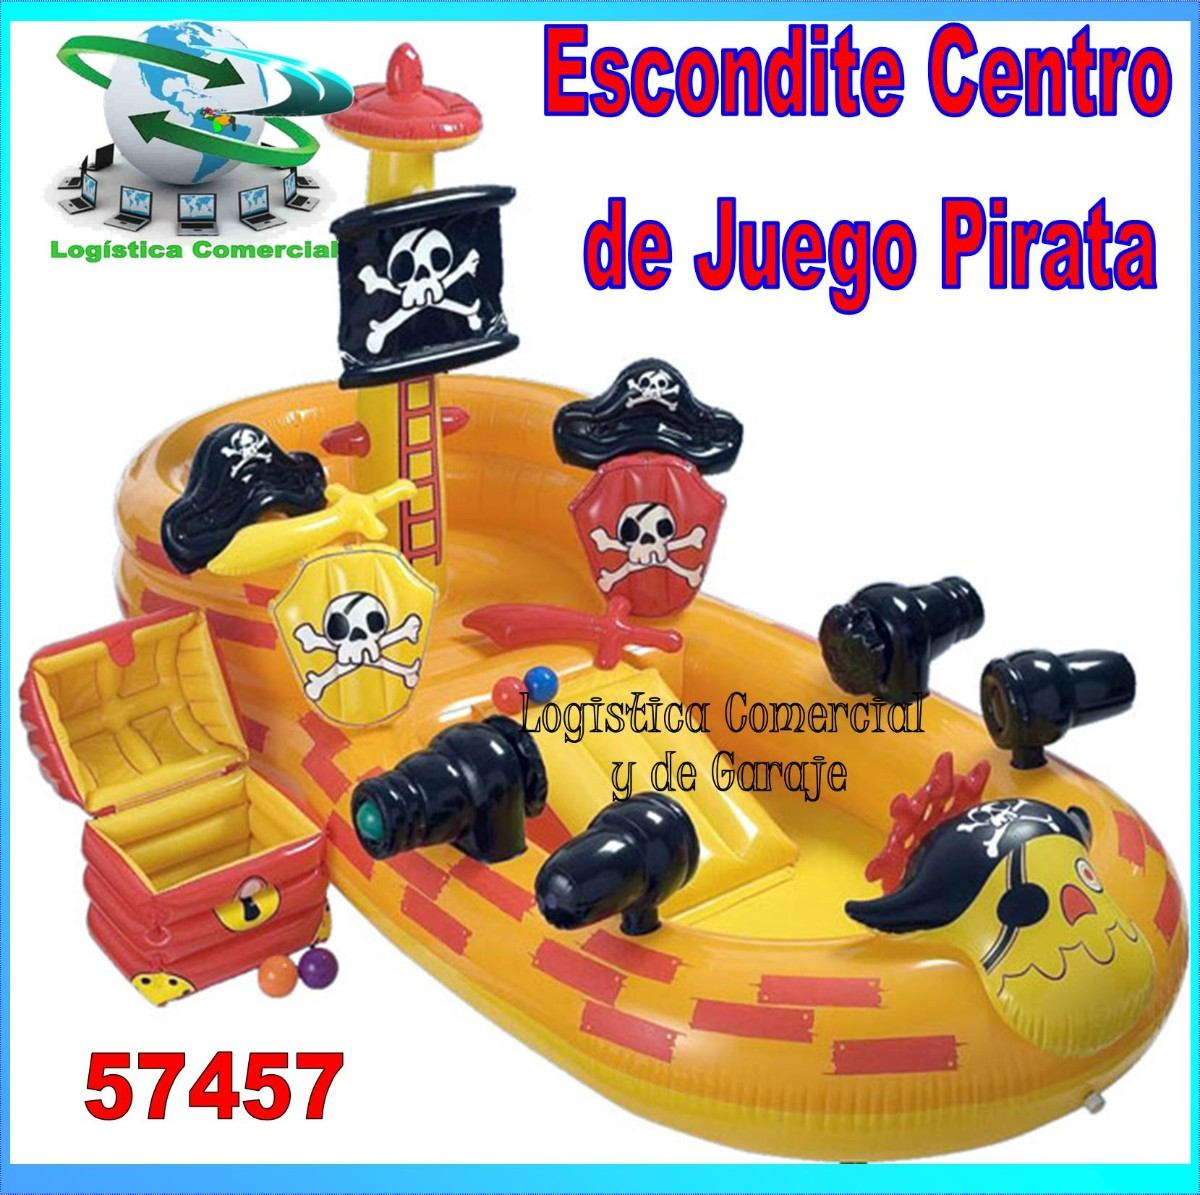 Piscina inflable centro juego accesorios piratas intex for Accesorios para piscinas intex